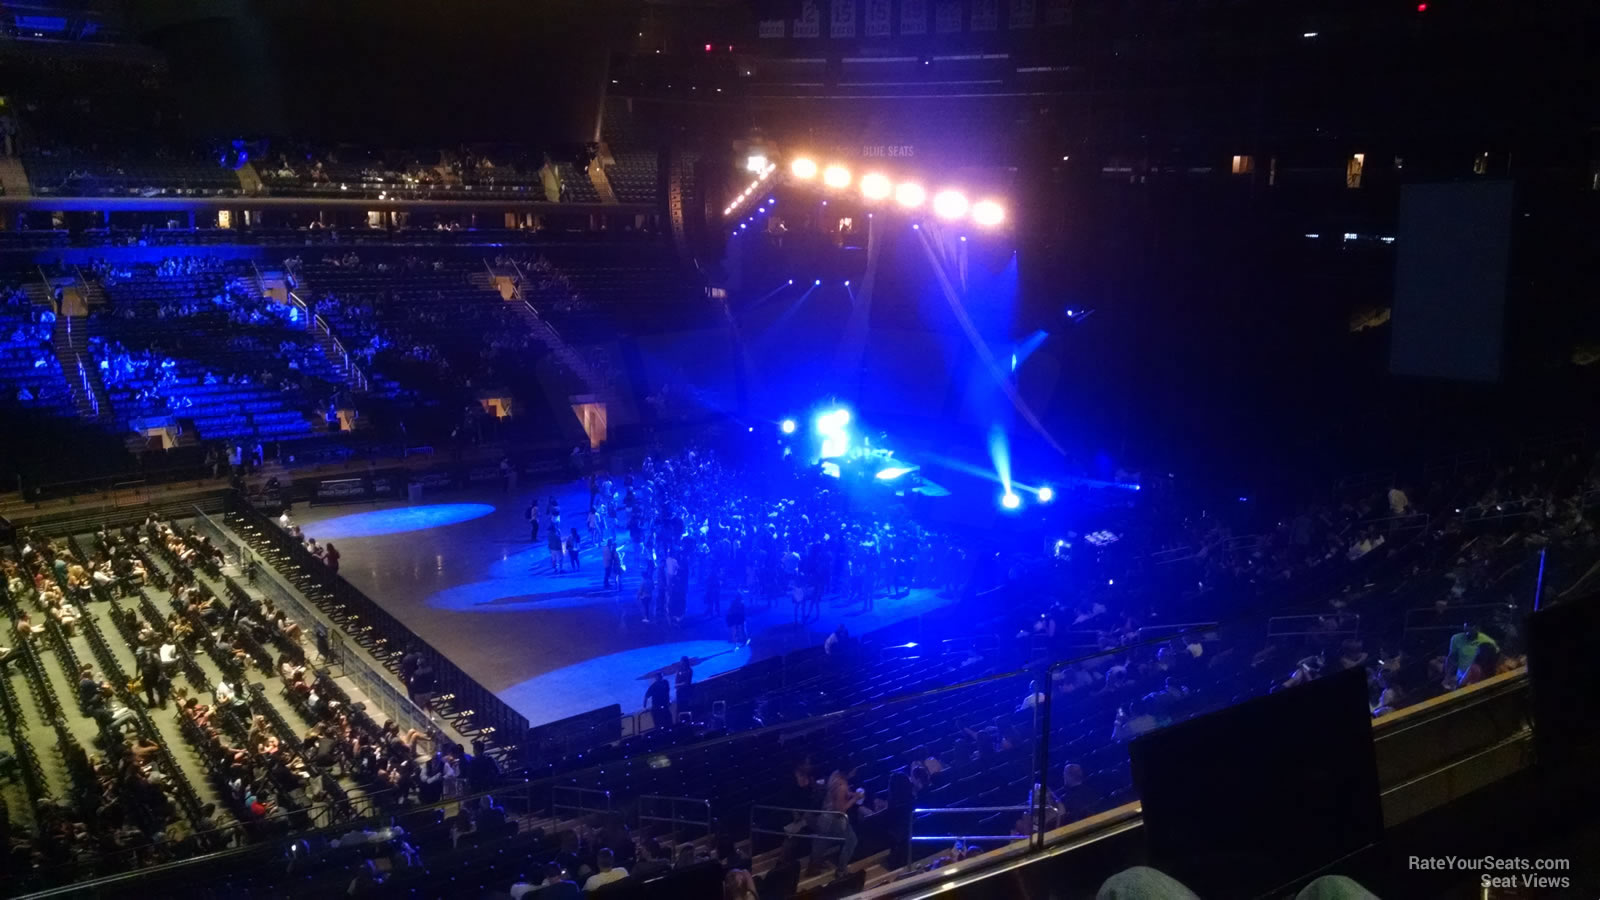 Madison square garden section 210 concert seating - How many seats at madison square garden ...